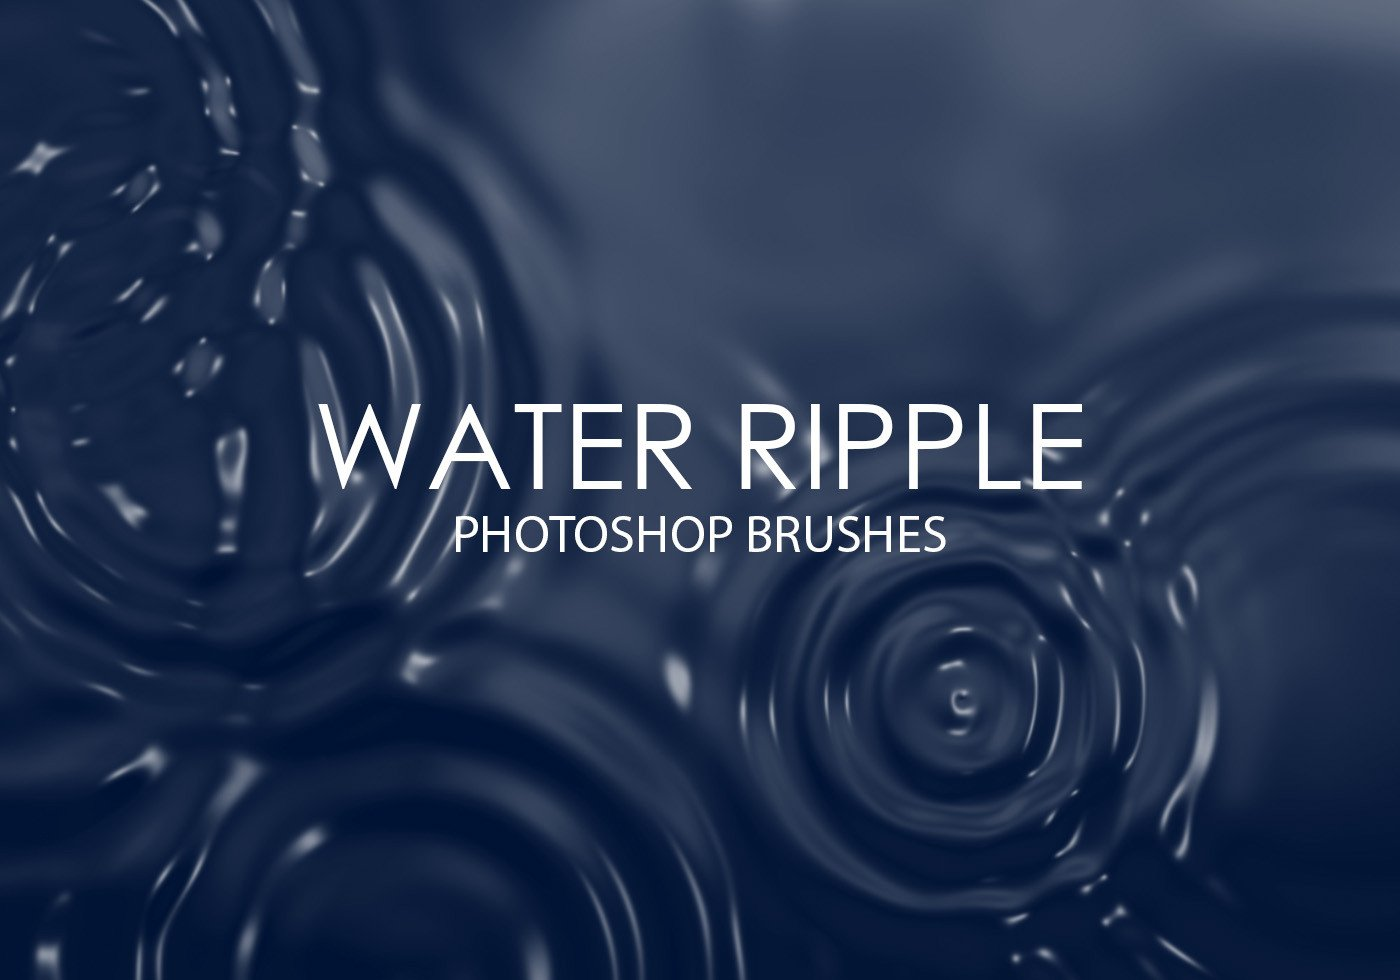 Water Drop Brush Photoshop Earmarked for Vd Free Water Ripple Shop Brushes